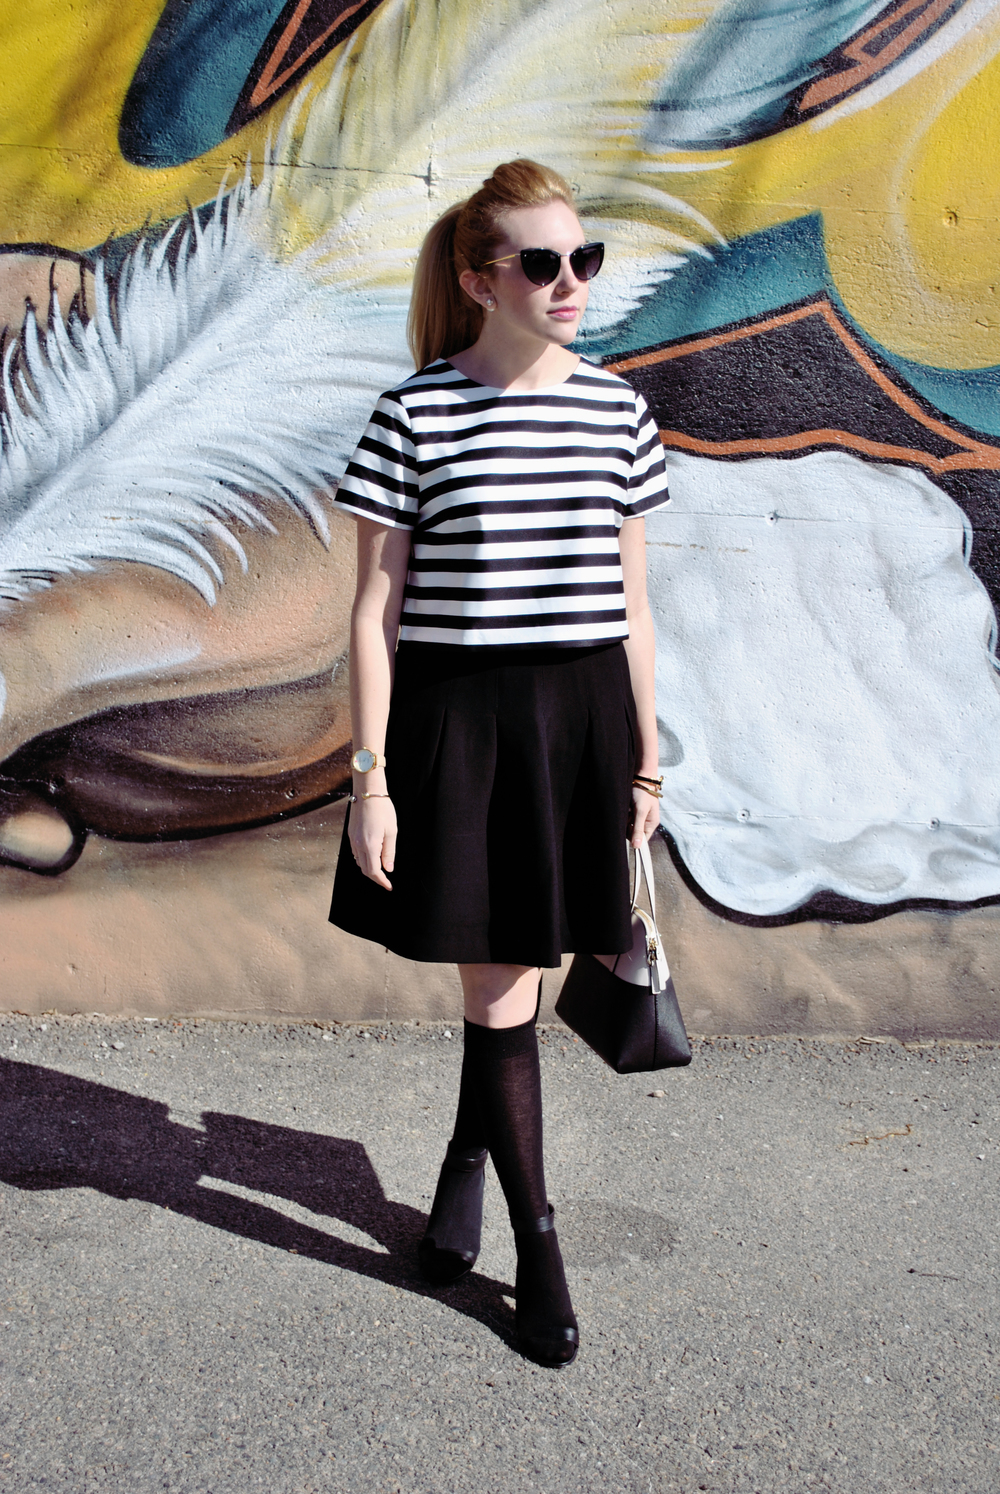 thoughtfulwish | quincy, MA // meredith wish // boston // fashion // fashion blogger // fblog // black and white outfit // stripes // stripe outfit // forever21 // club monaco // kate spade